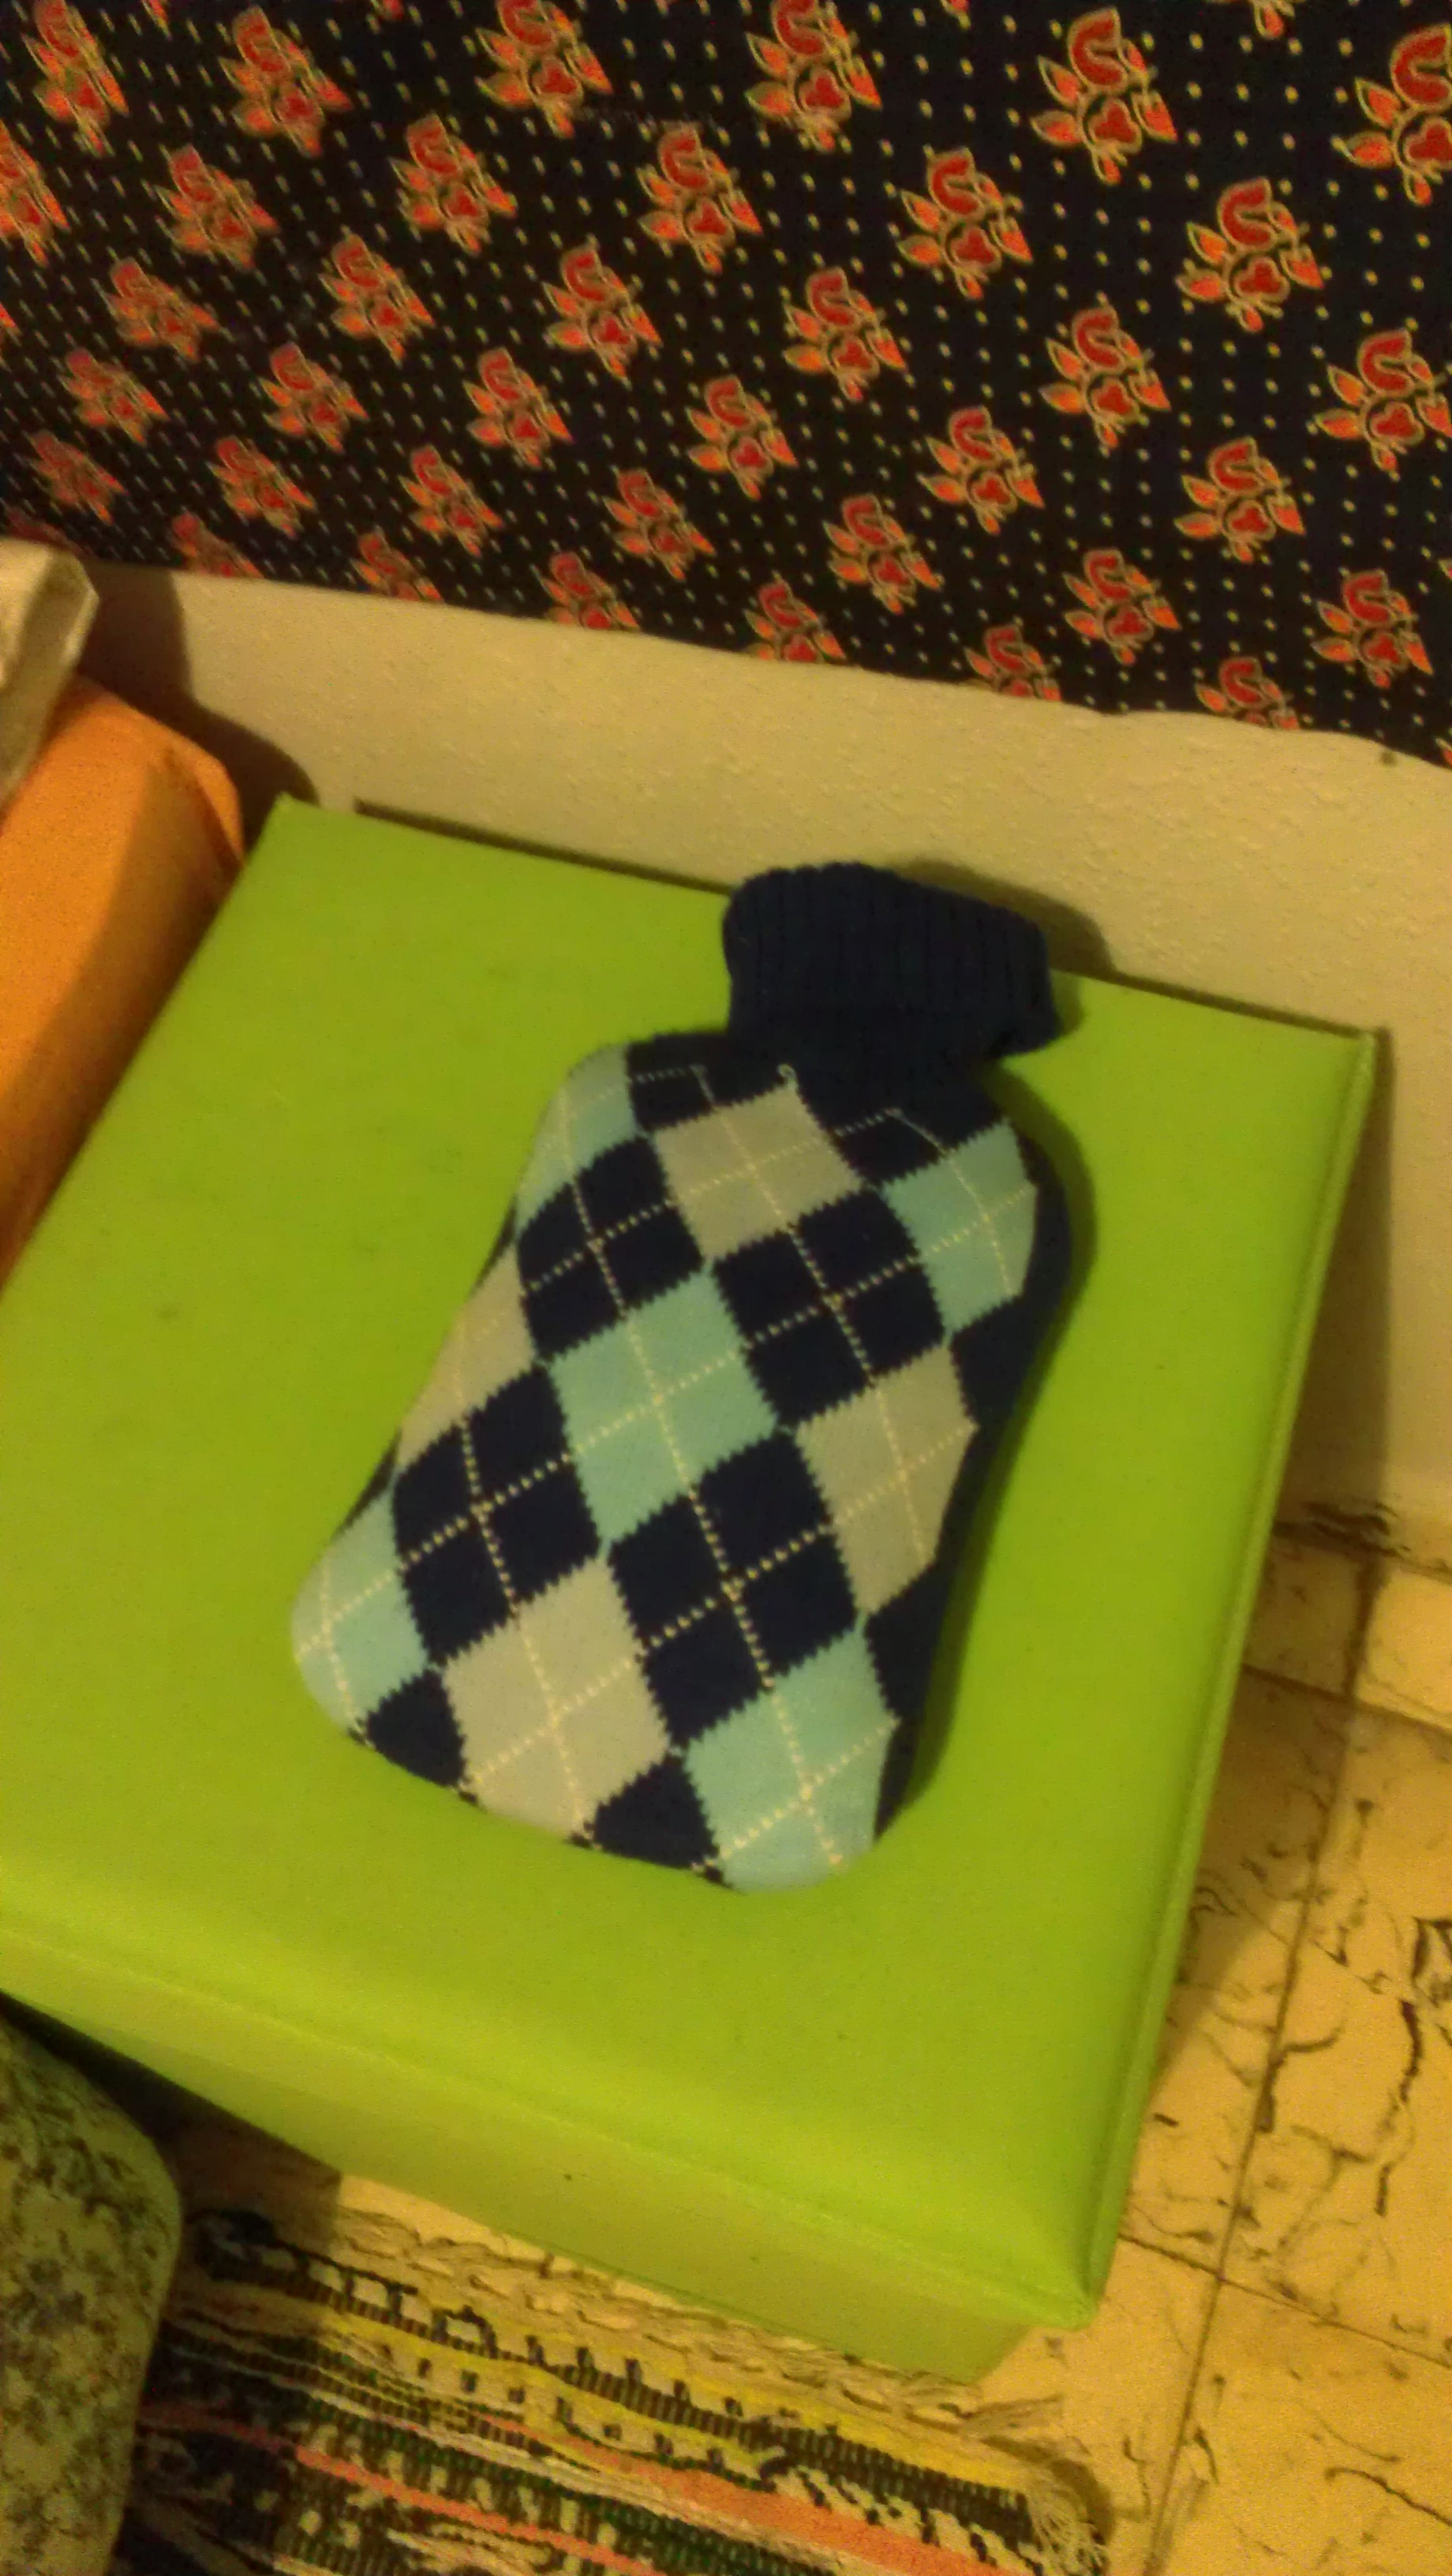 so happy to see this in my room in granada. the hot water bottle is an essential survival tool for living in spain in winter.